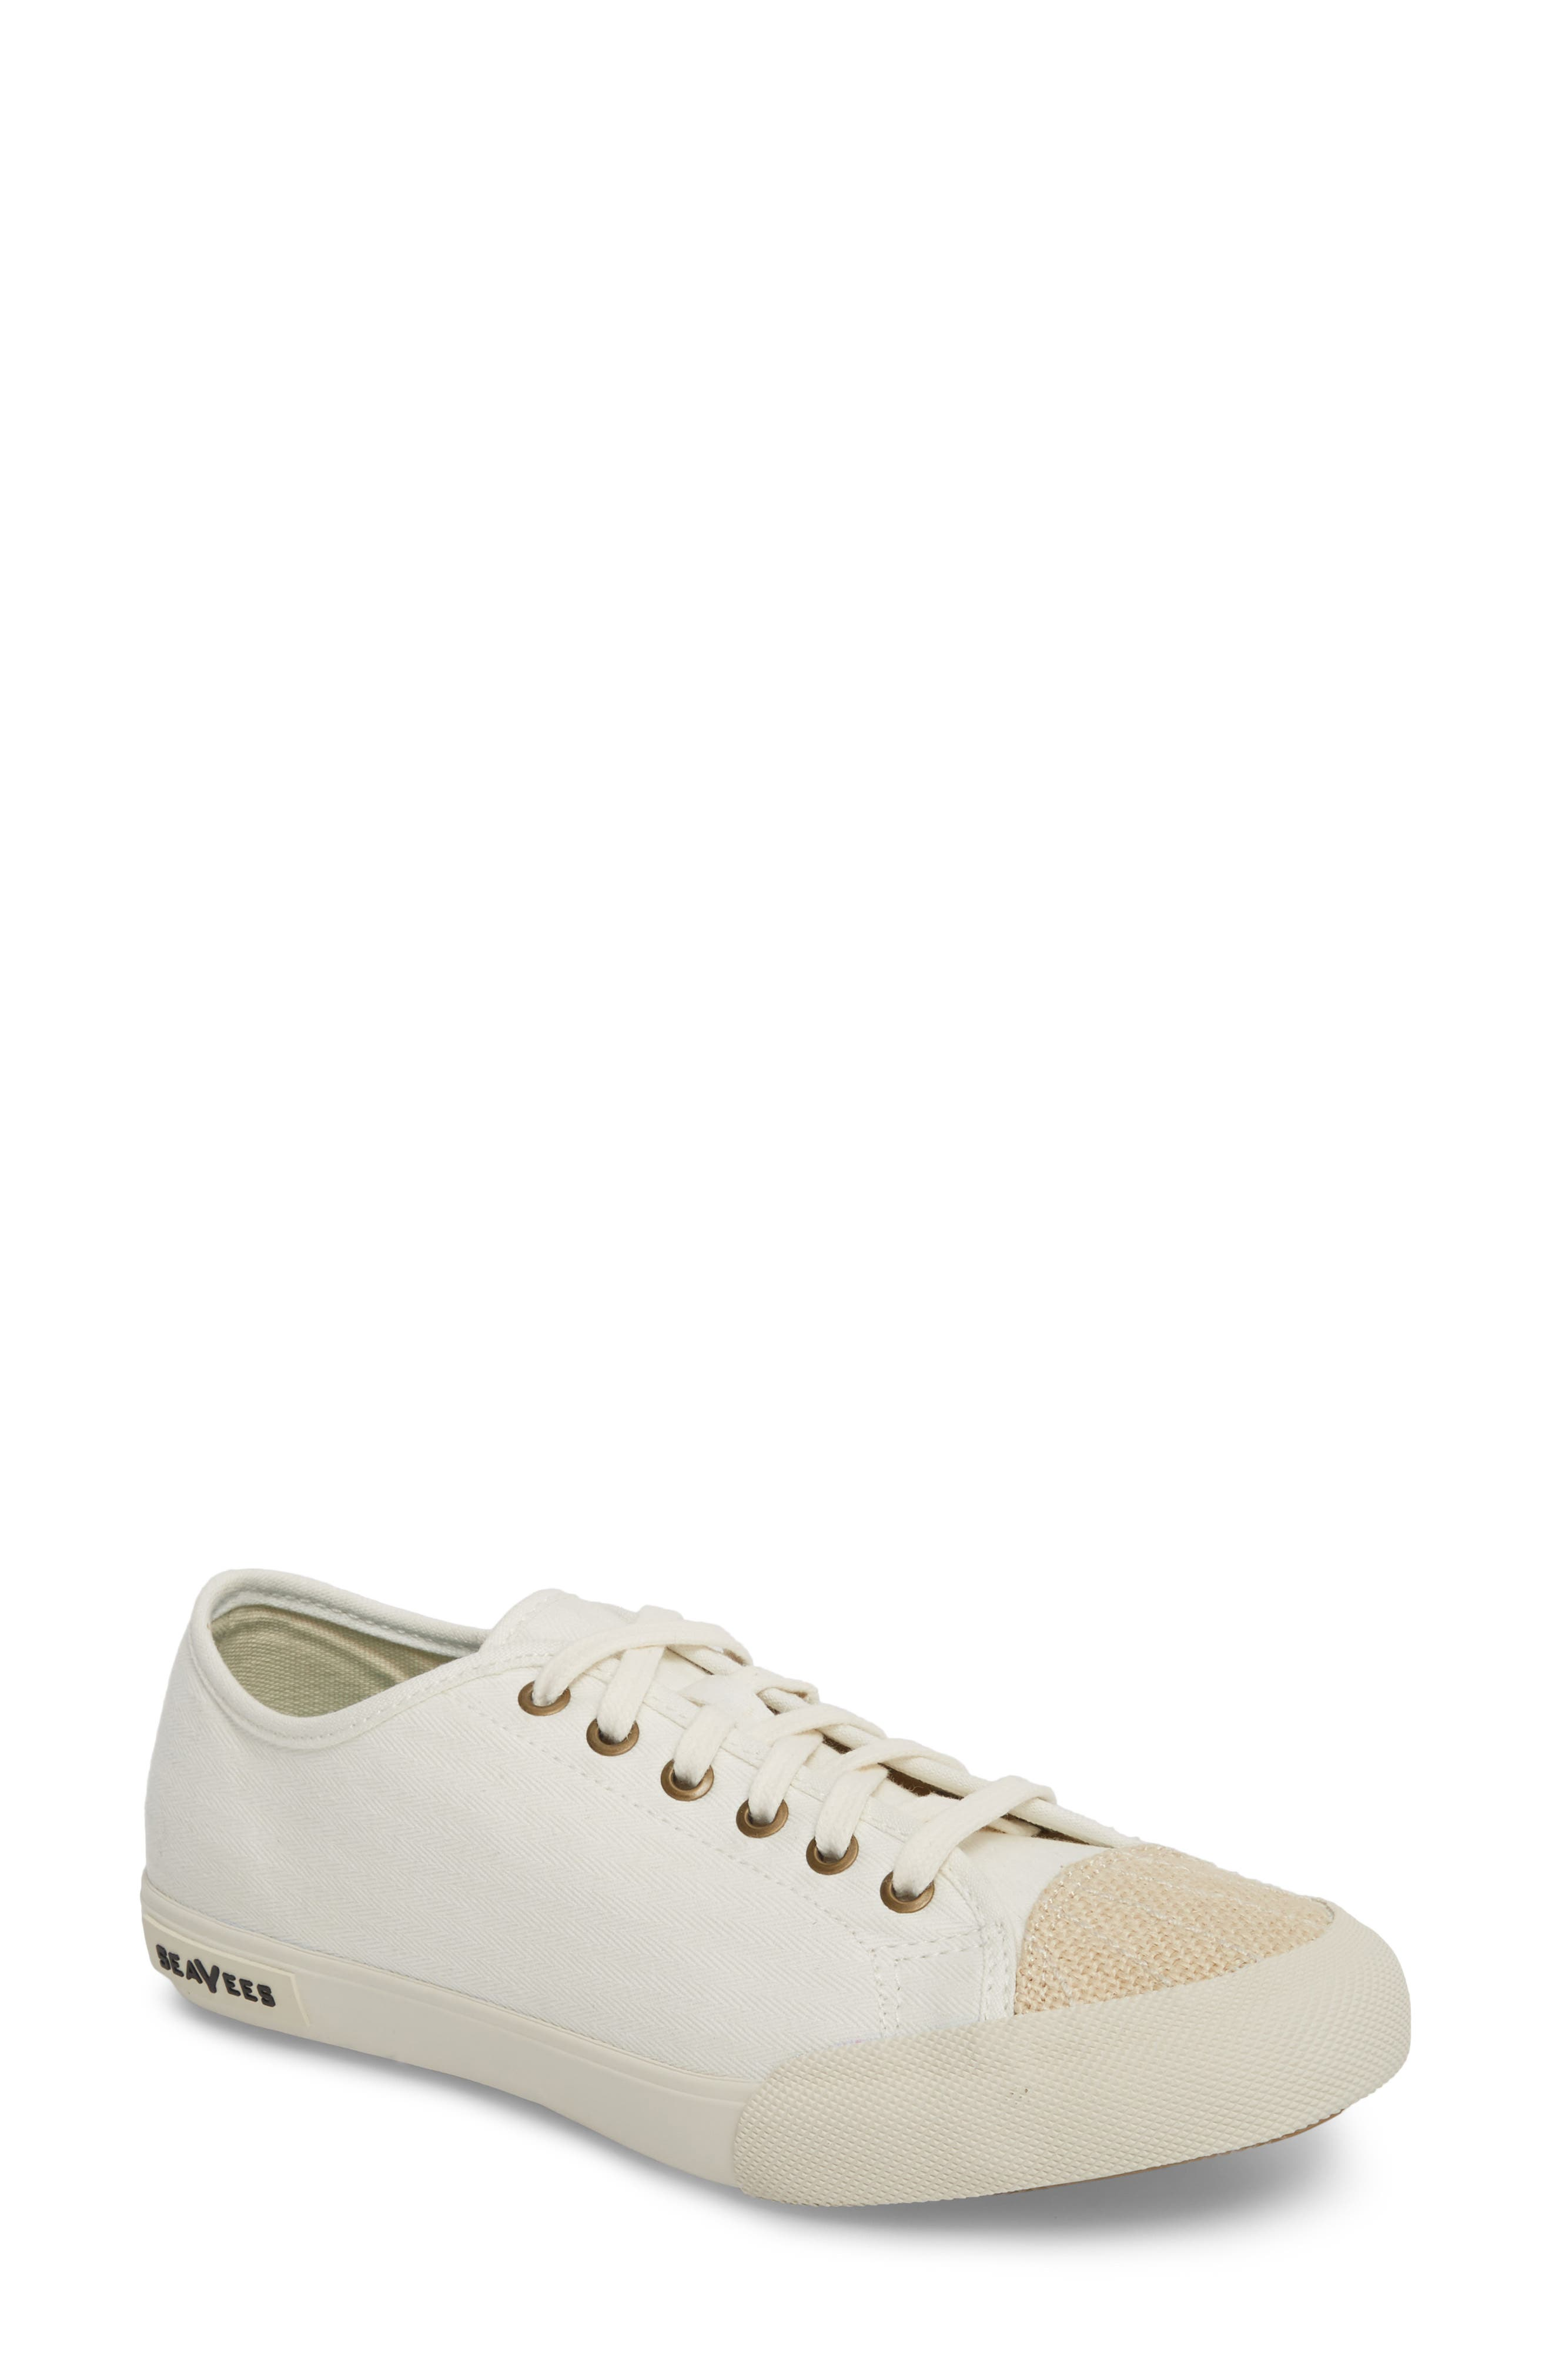 Army Issue Low Top Sneaker,                         Main,                         color, BLEACH